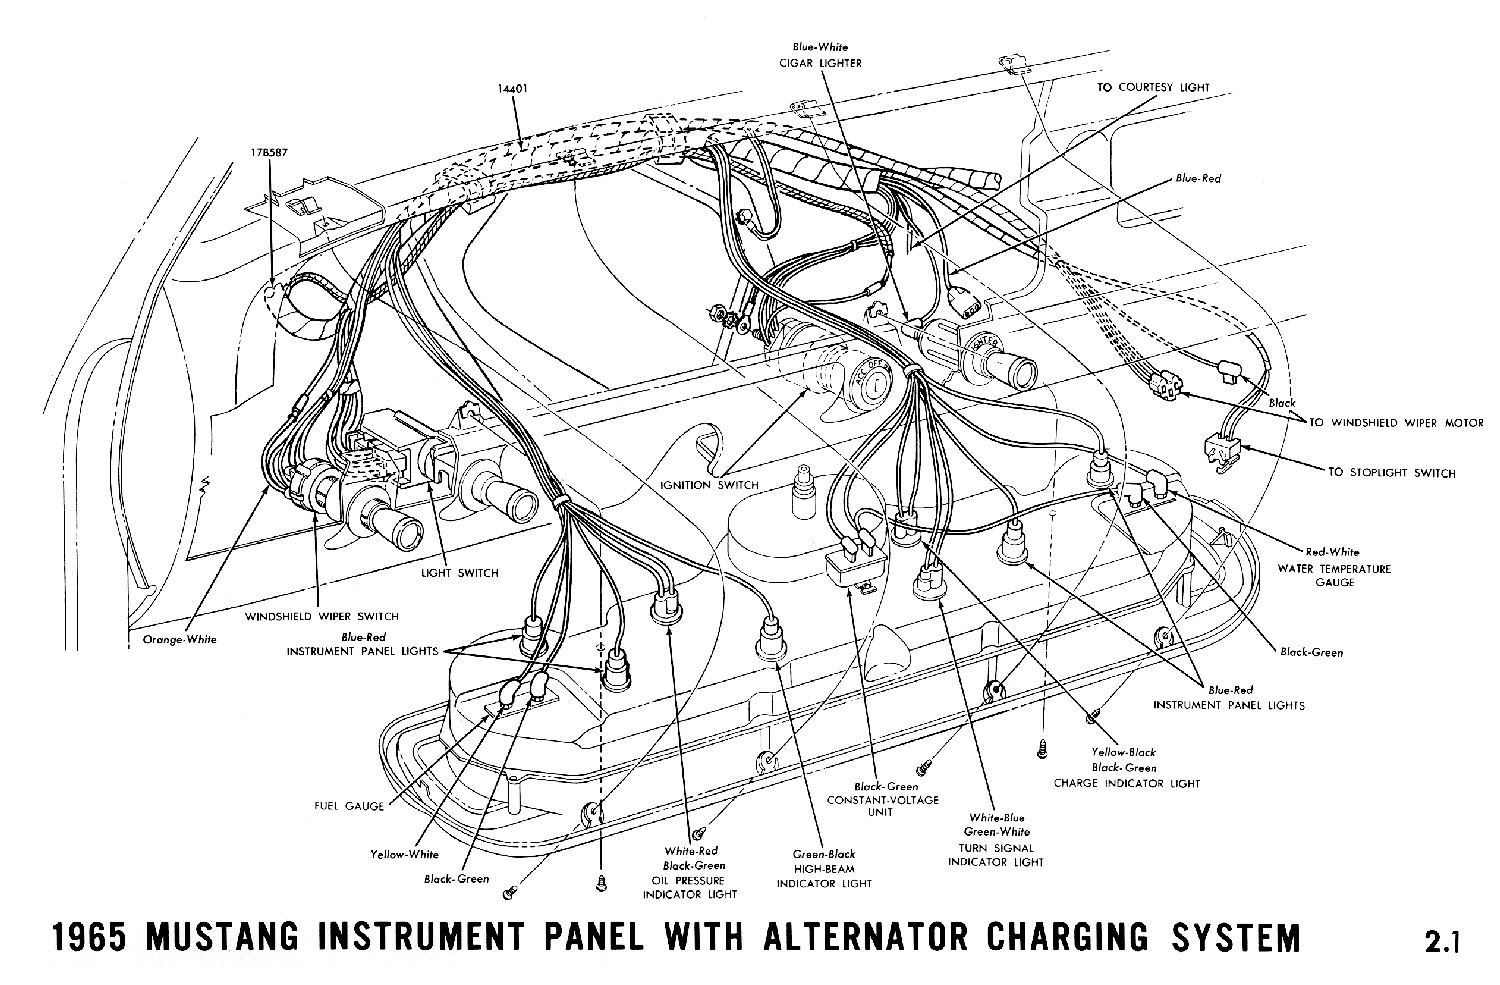 1971 Mustang Dash Wiring Diagram 1999 Saab 9 5 Fuse Box Diagram Bege Wiring Diagram